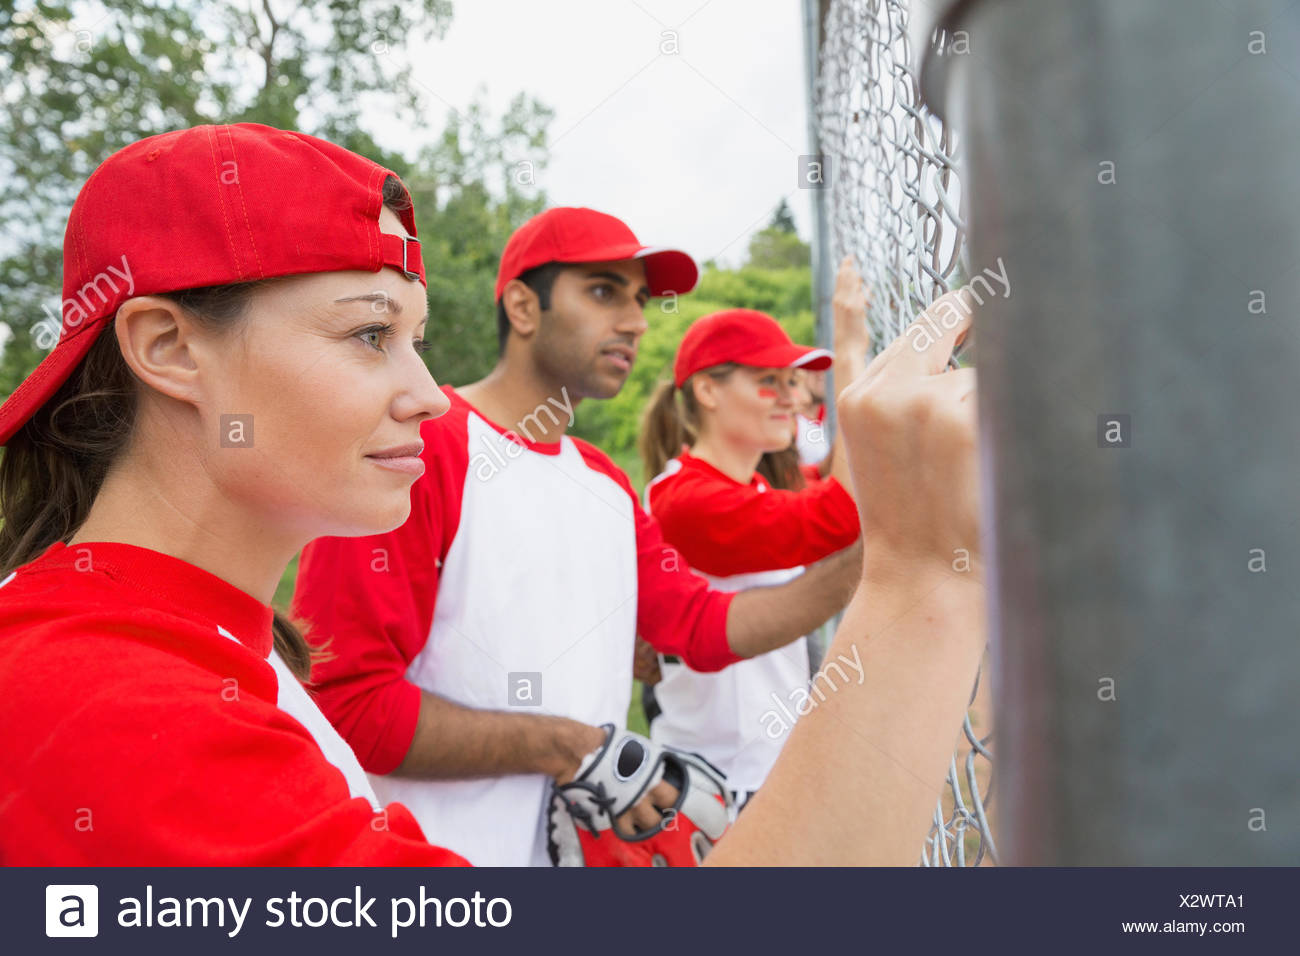 Baseball team watching game from behind fence - Stock Image